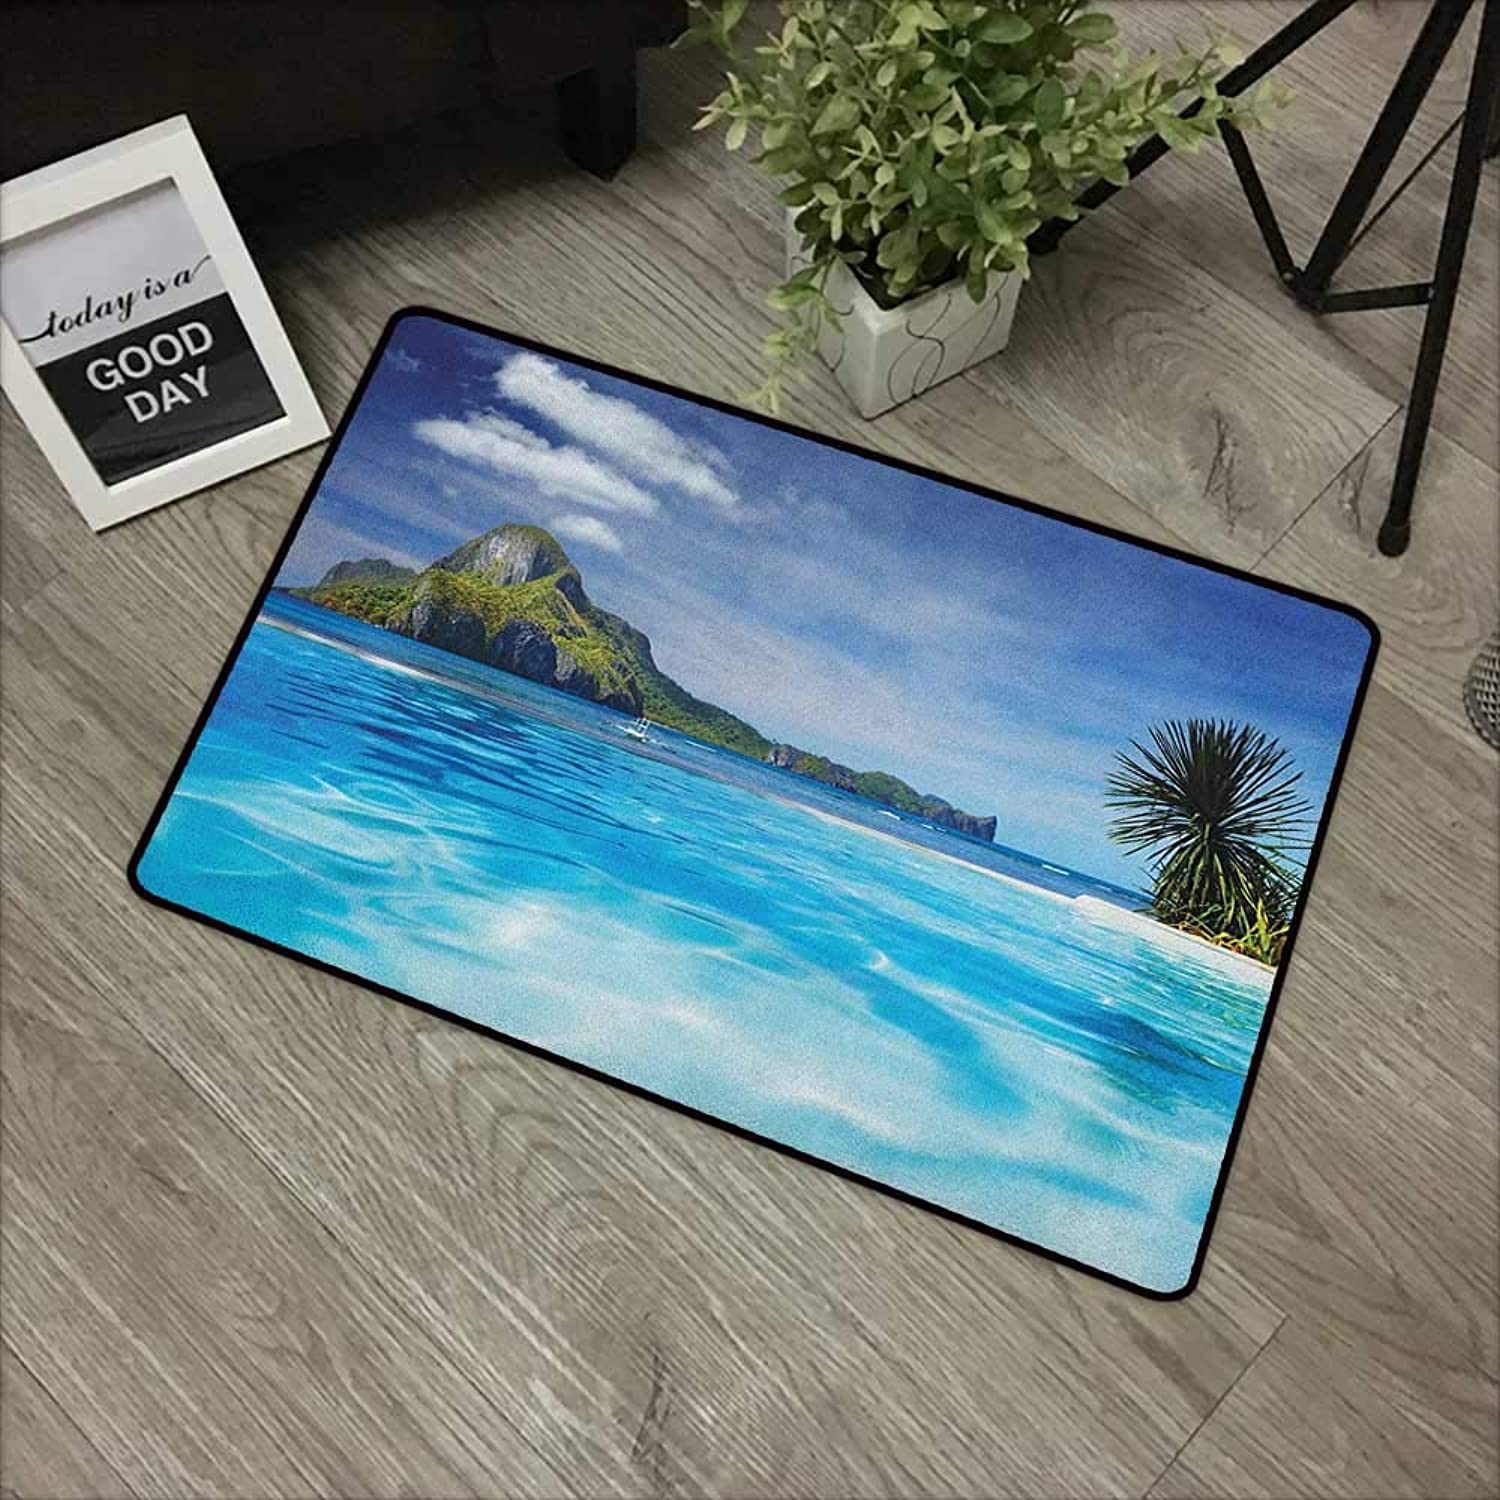 Pool Anti-Slip Door mat W35 x L59 INCH Landscape,Landscape with Swimming Pool and Distant Island Tropic Exotic Hawaiian Theme, Turquoise Green Easy to Clean, Easy to fold,Non-Slip Door Mat Carpet